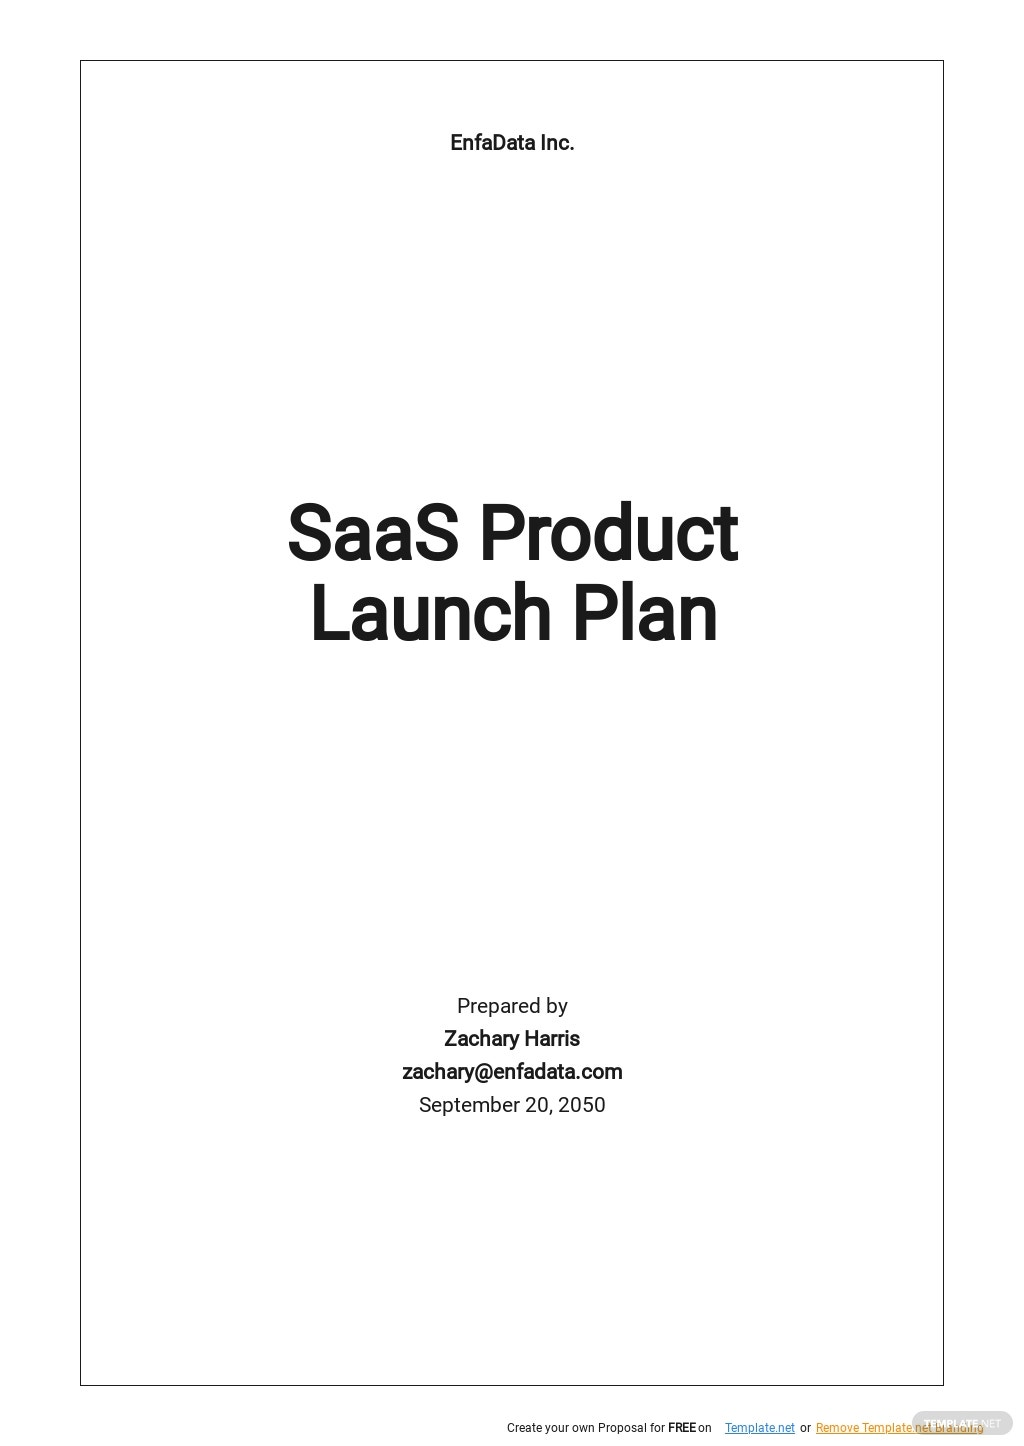 SaaS Product Launch Plan Template.jpe